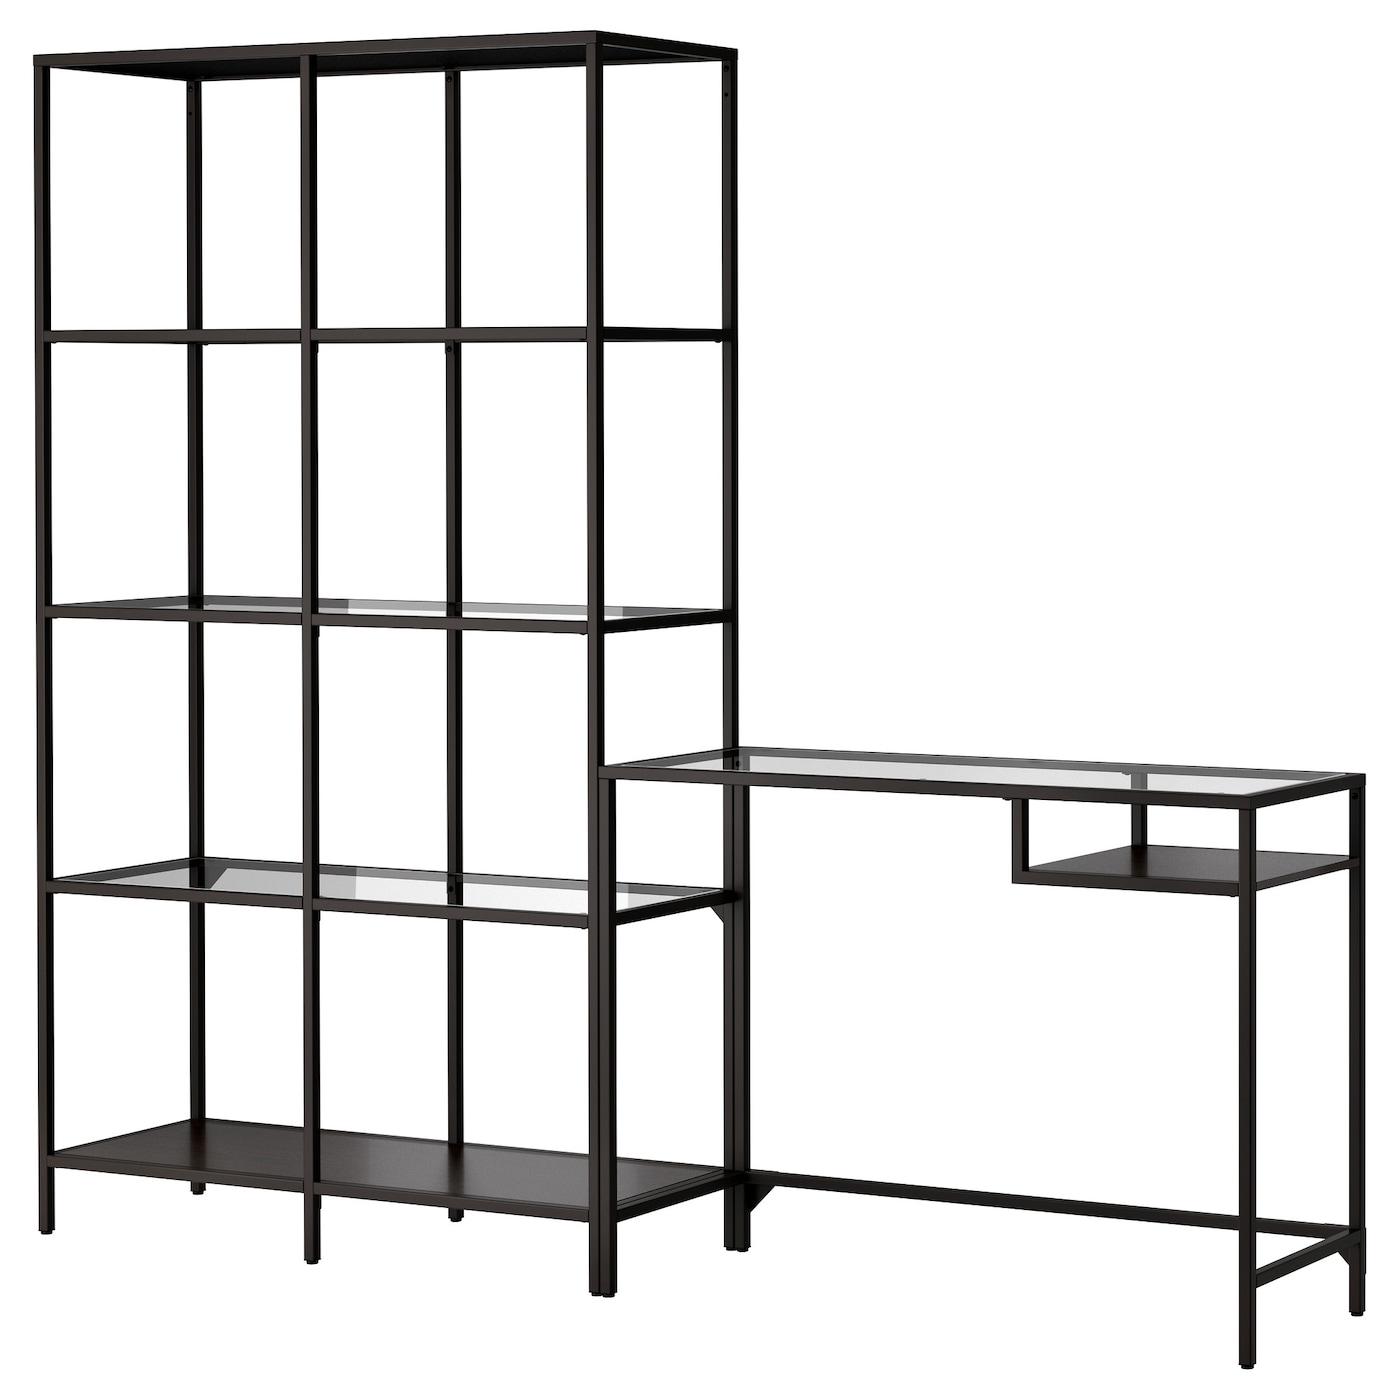 regalsysteme online kaufen m bel suchmaschine. Black Bedroom Furniture Sets. Home Design Ideas